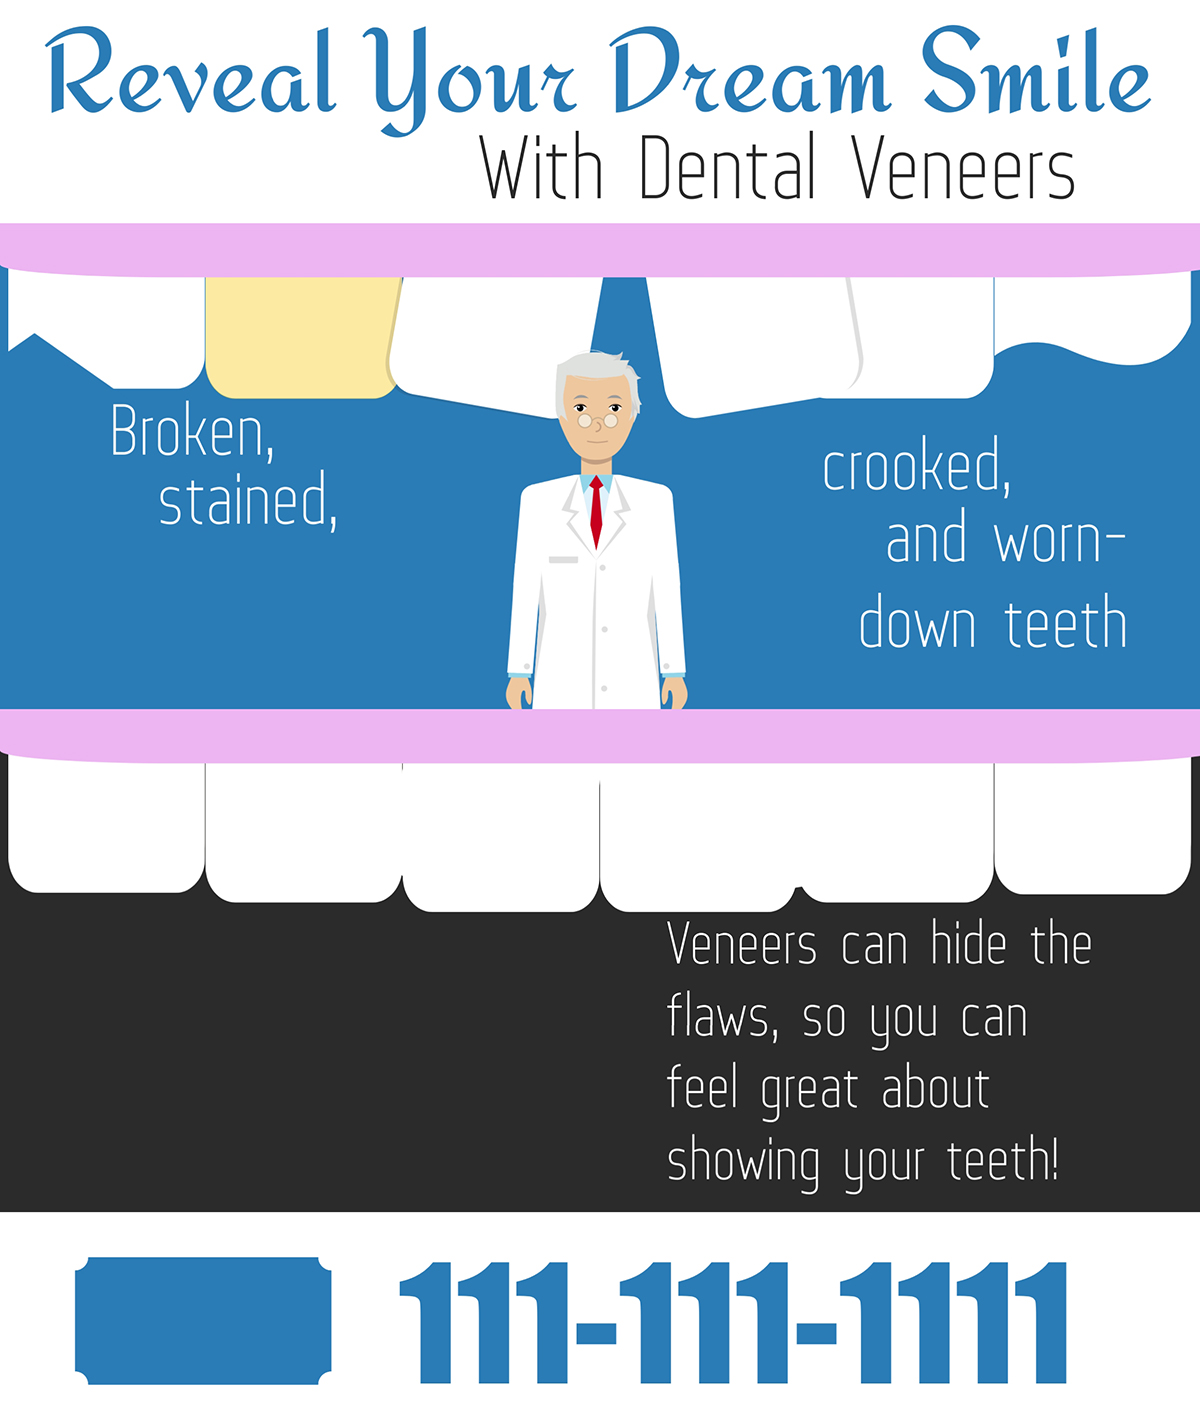 visme case study - dental veneers infographic